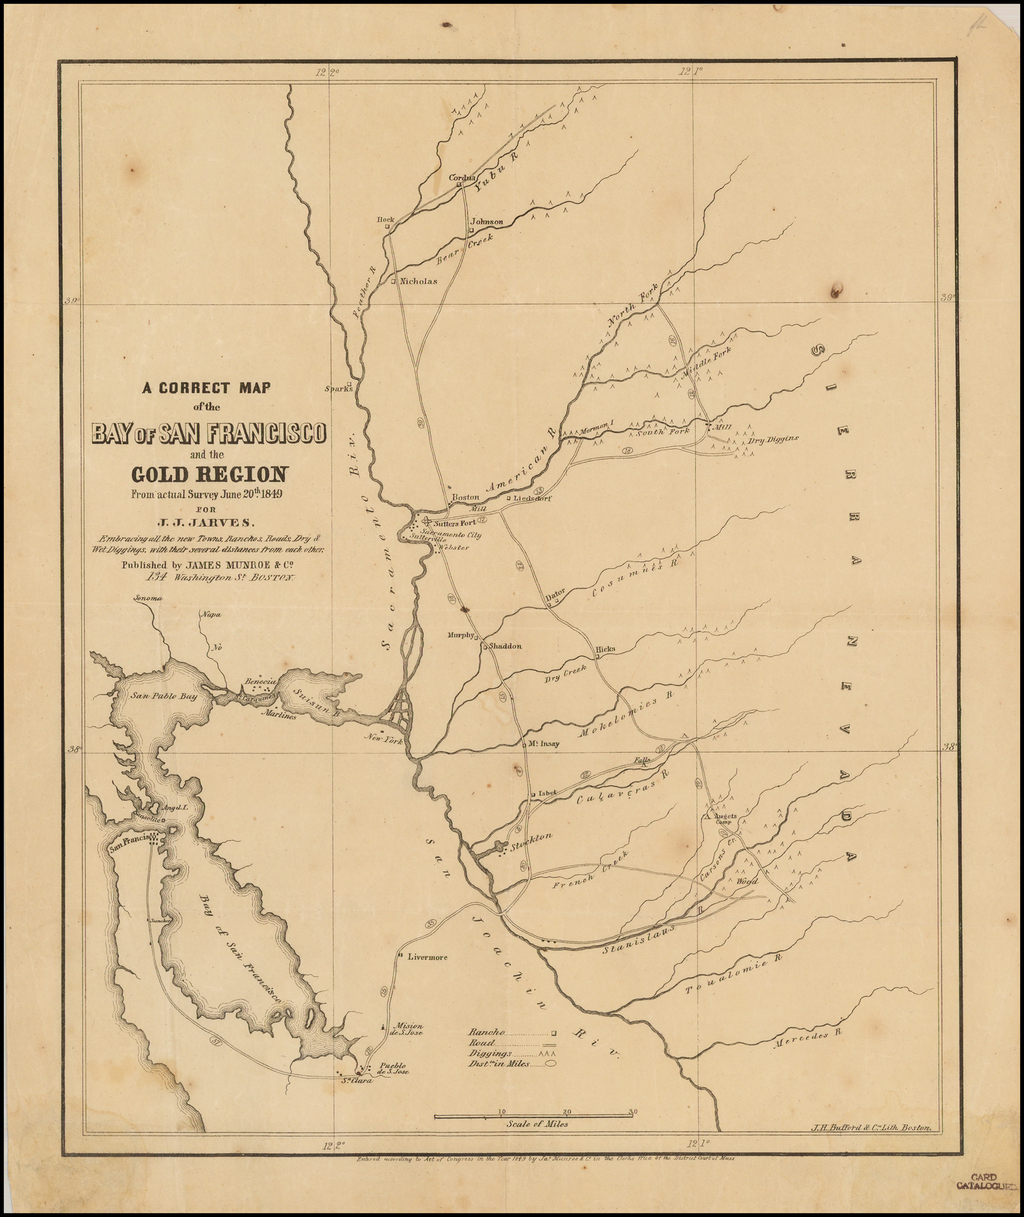 A Correct Map of the Bay of San Francisco and the Gold Region from actual Survey June 20th. 1849 for J.J. Jarves. Embracing all the New Towns, Ranchos, Roads, Dry and Wet Diggings, with their several distances from each other . . .  By James Jackson Jarves